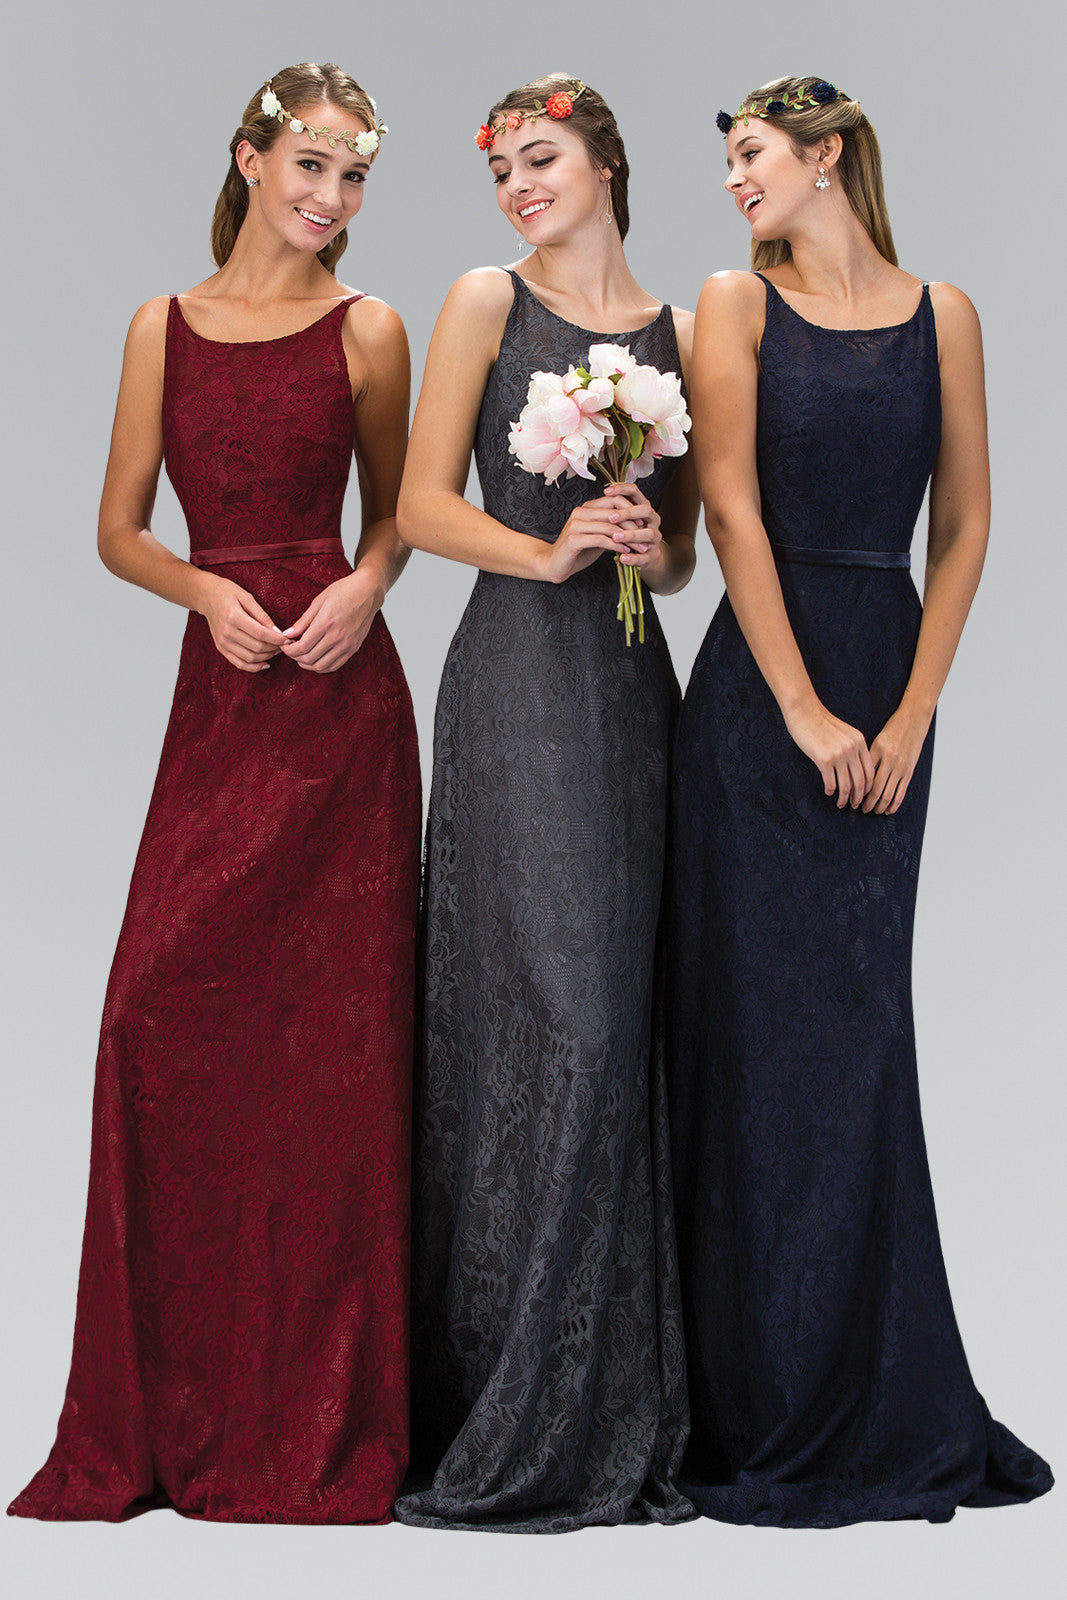 Affordable bridesmaid dresses long chiffon dresses simply fab lovely scoop neckline lace bridesmaid dress gl2170sku fabgl2170lovely scoop neckline lace bridesmaid dress accented with thin satin belt at the waist ombrellifo Choice Image